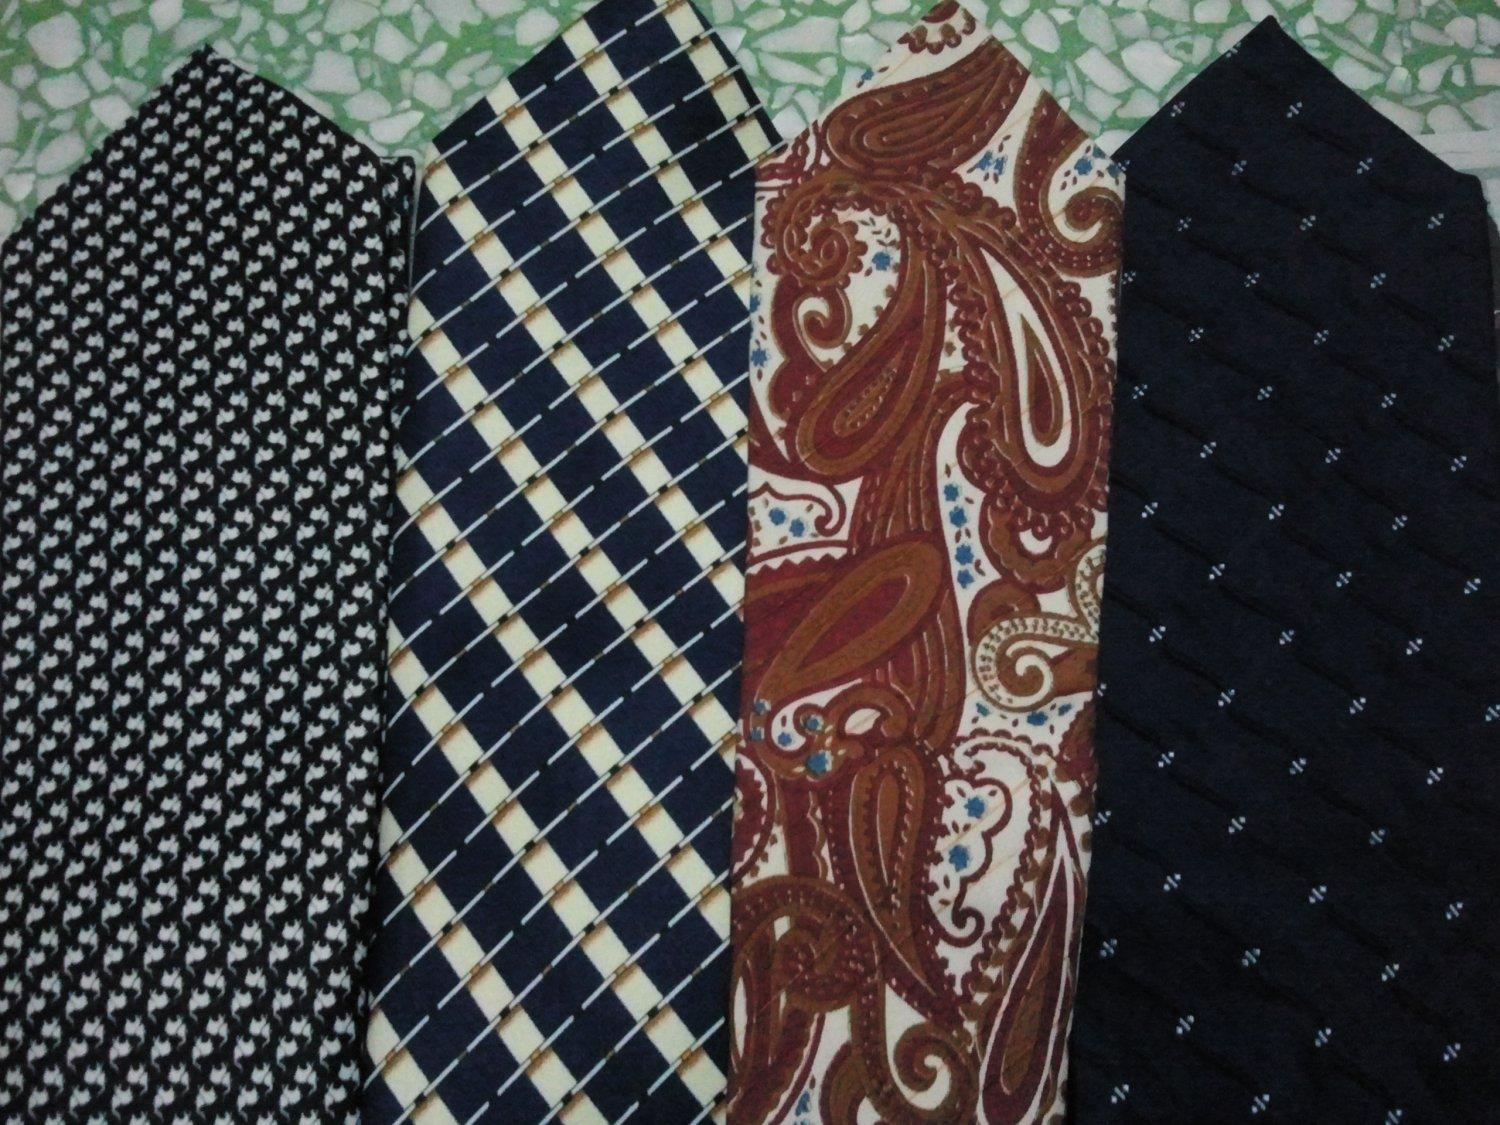 Mixed 4 Men's Classic Styles Designs Thai Handmade Neckties (*4 pieces in Limited Edition)